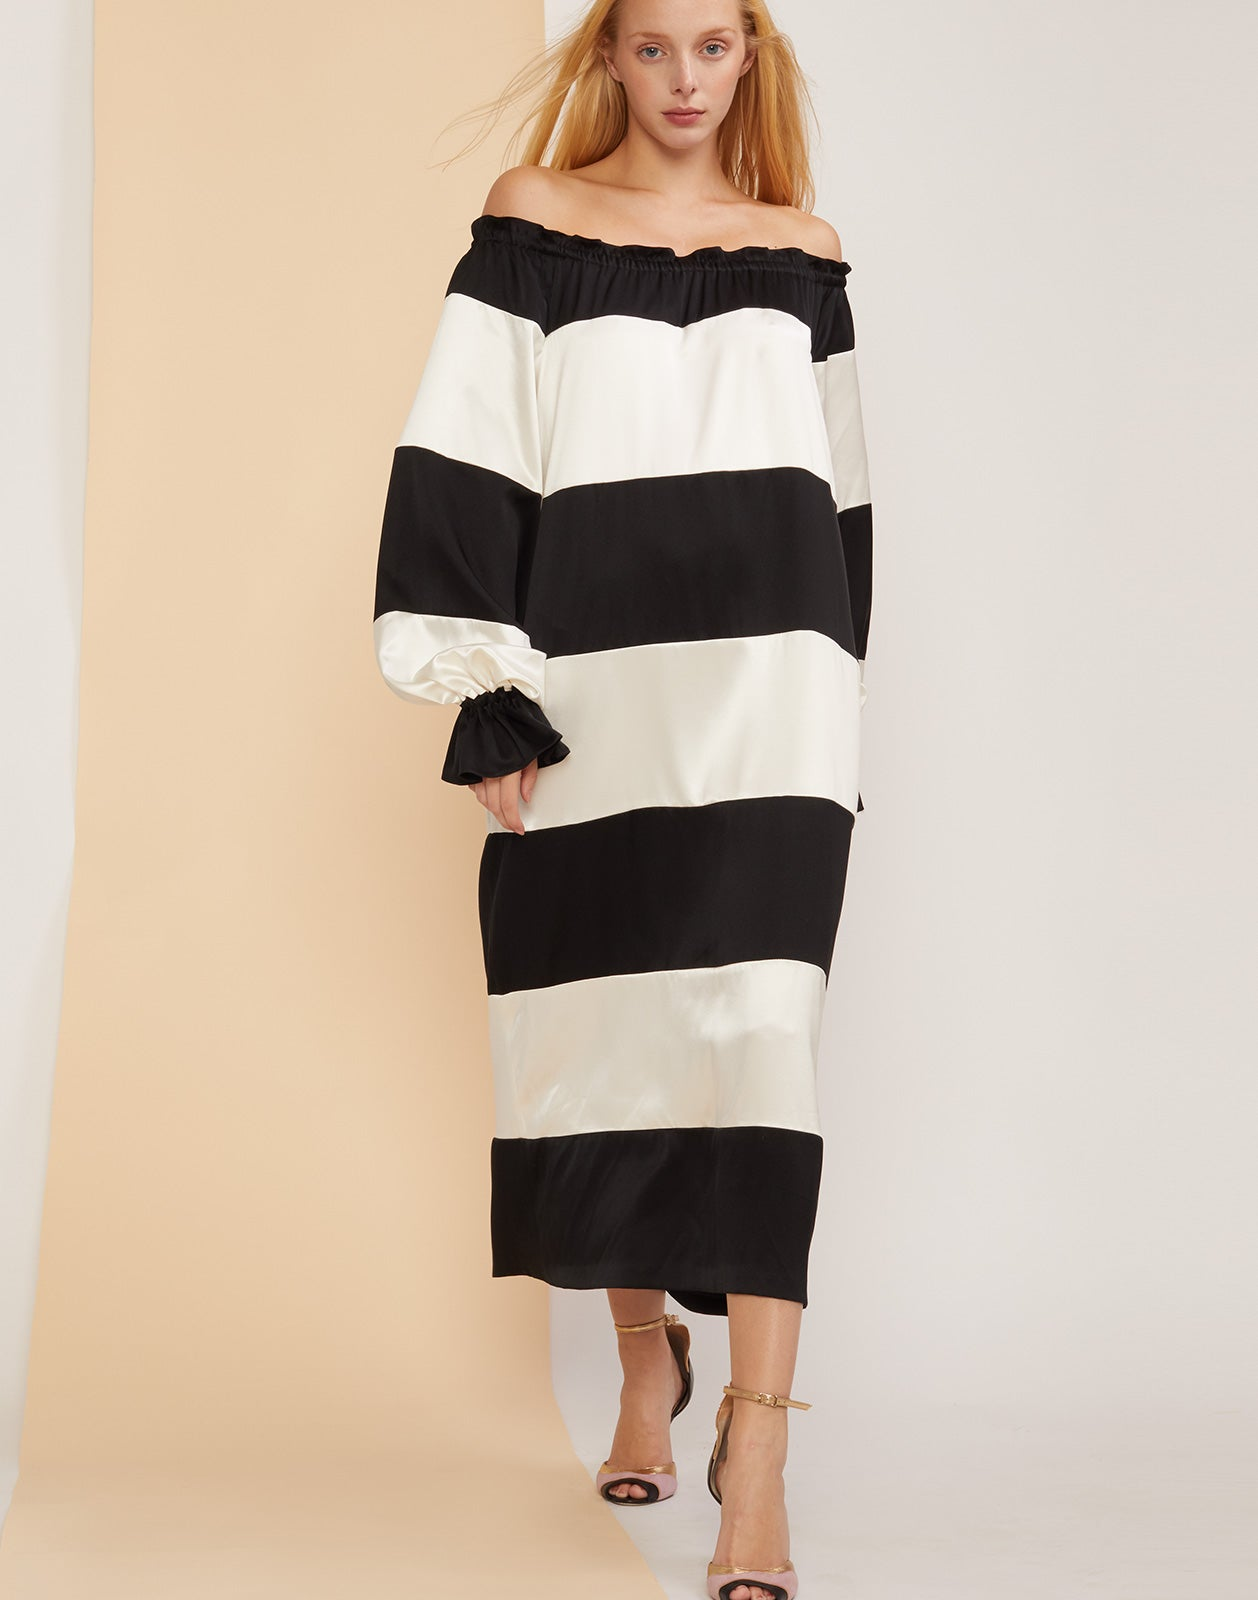 Black White and Off the Shoulder Dresses